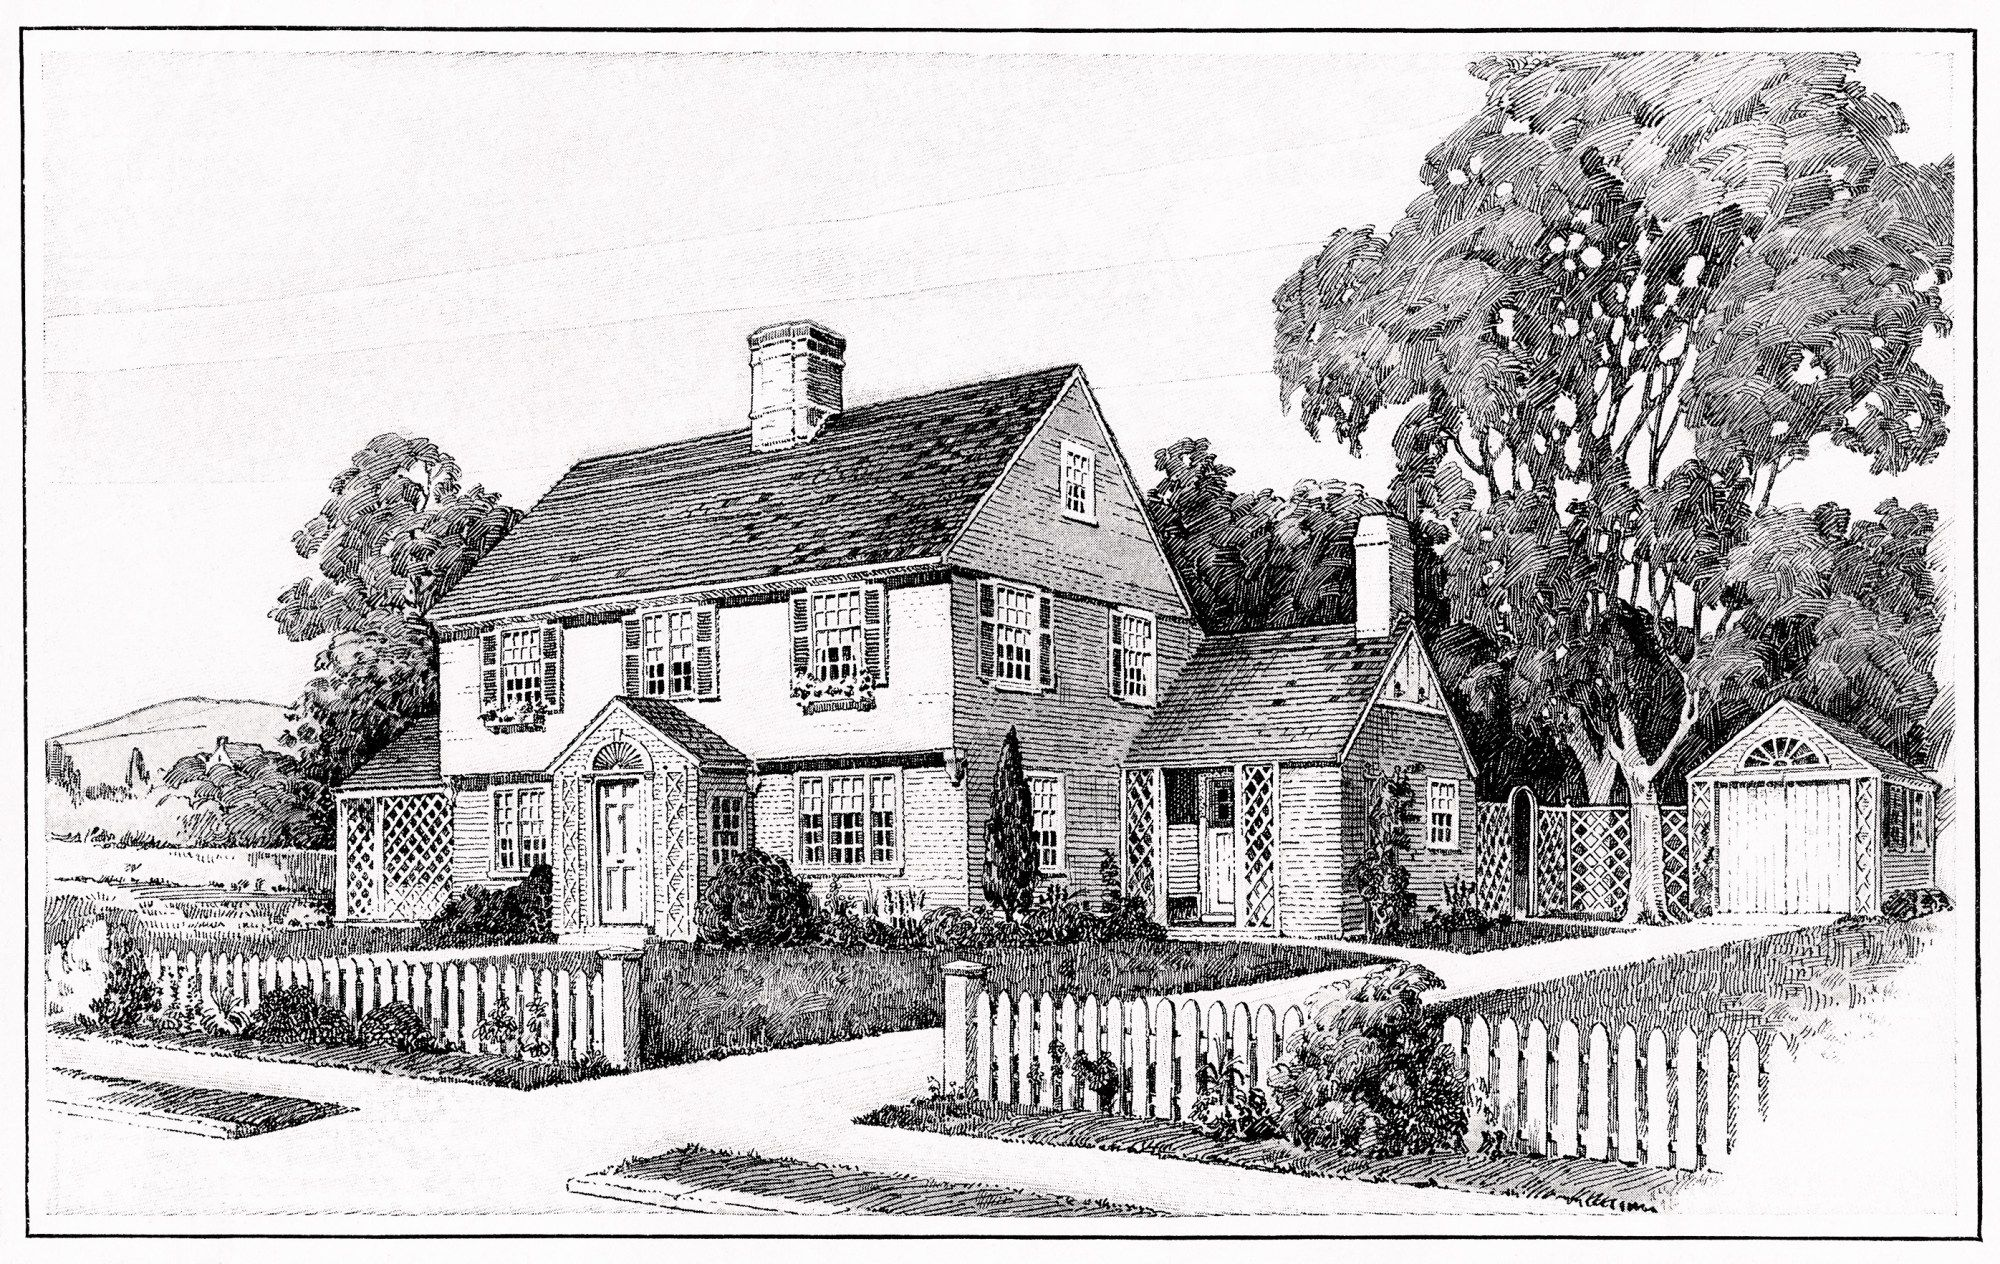 Vintage House Plans Old Fashioned Home Antique House Clipart Black And White House Illustration Vintage House Plans Vintage House House Illustration